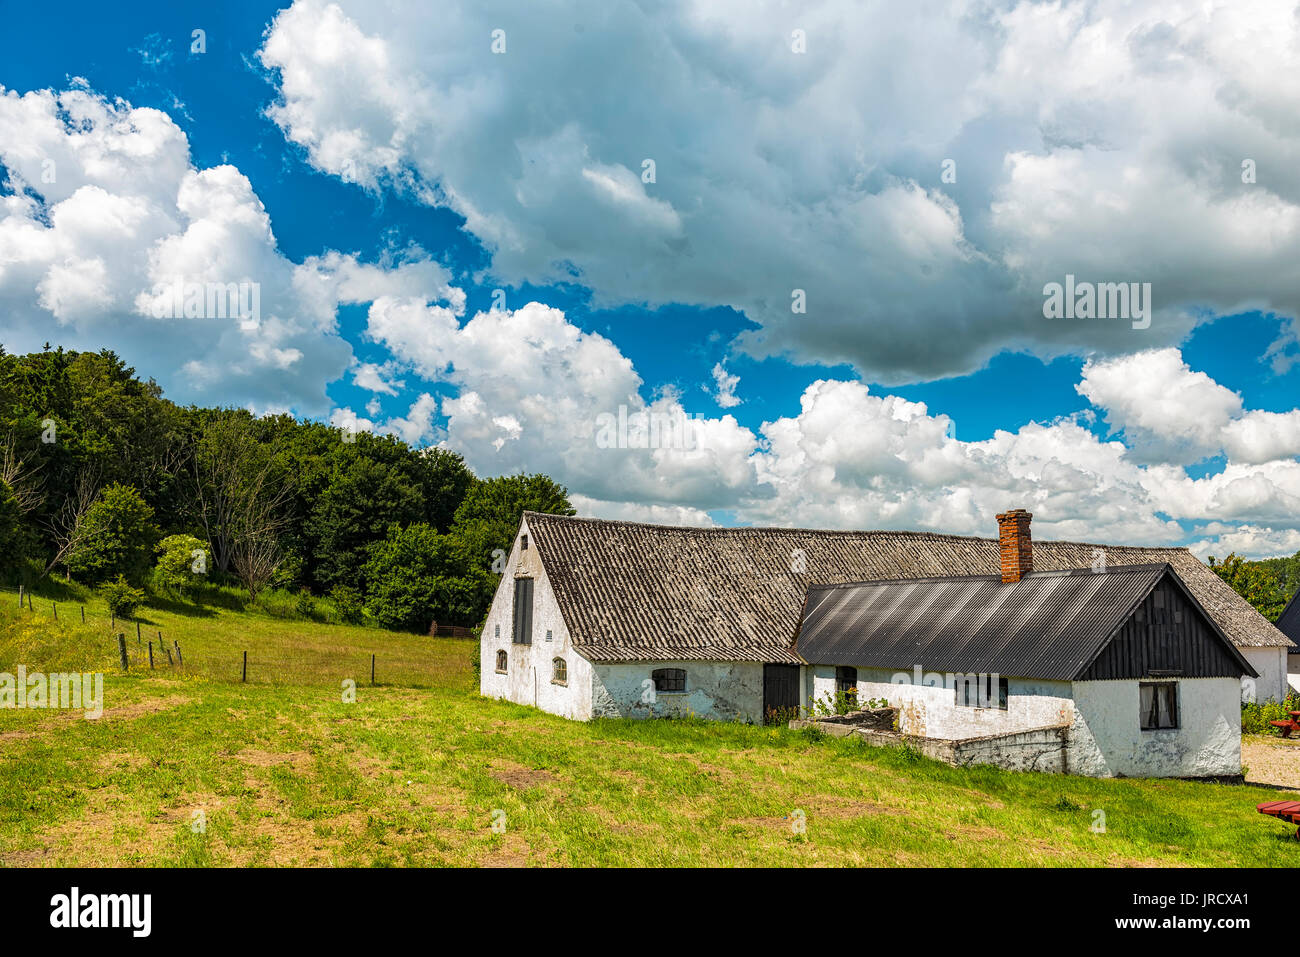 A swedish farm house in the countryside near to Ales stenar. - Stock Image